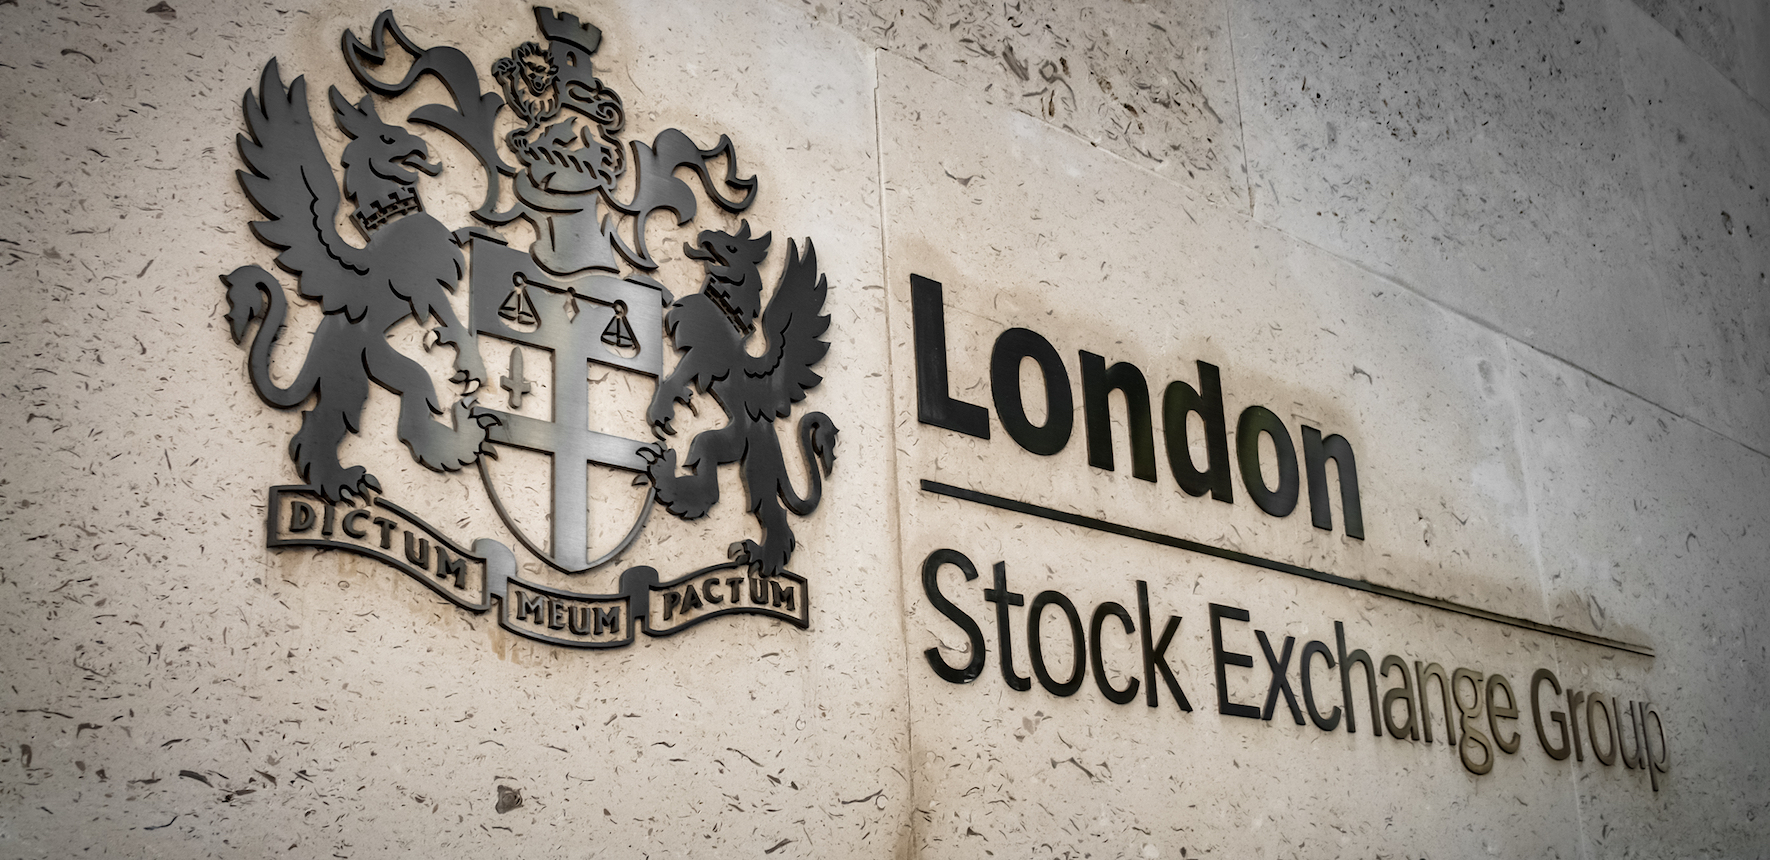 London Stock Exchange announces a proposed final dividend of 49.9 pence per share, resulting in a 16% increase in the full year dividend to 70.0 pence per share